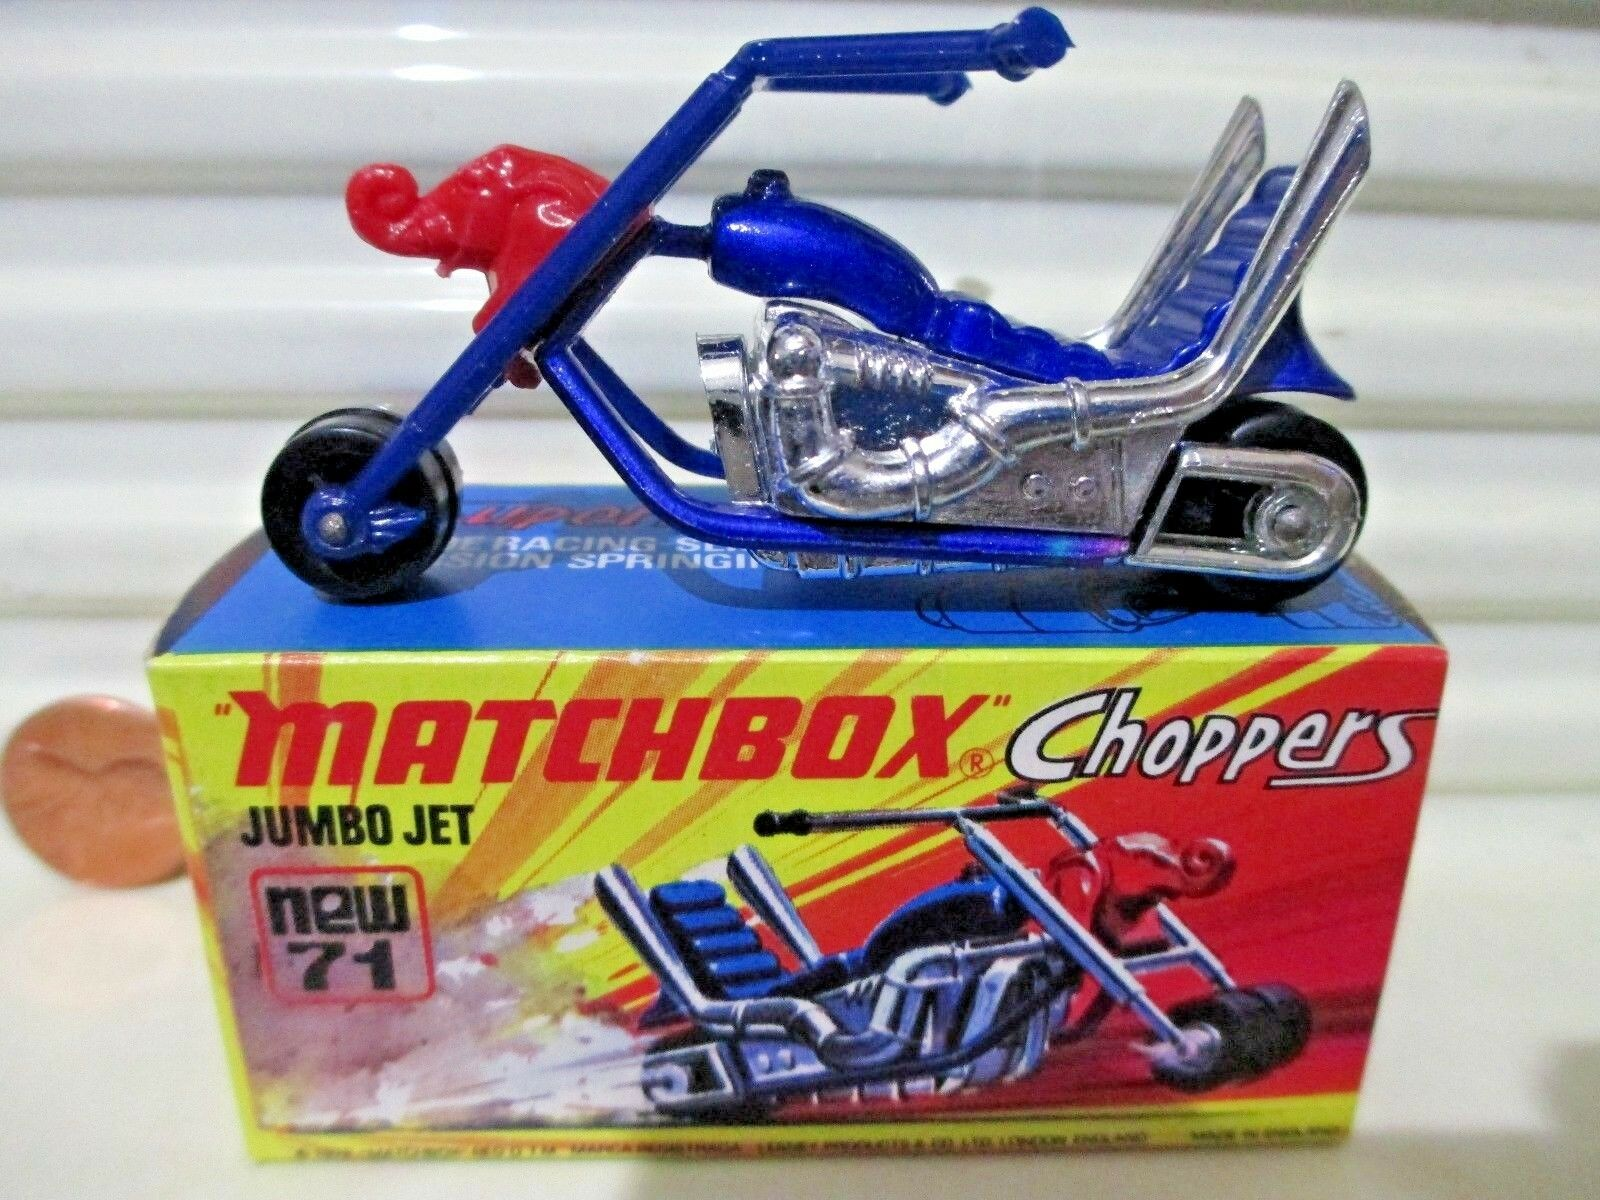 Lesney Matchbox 1972 MB71B JUMBO JET Motorcycle Factory Mint in Crisp NuMint Box